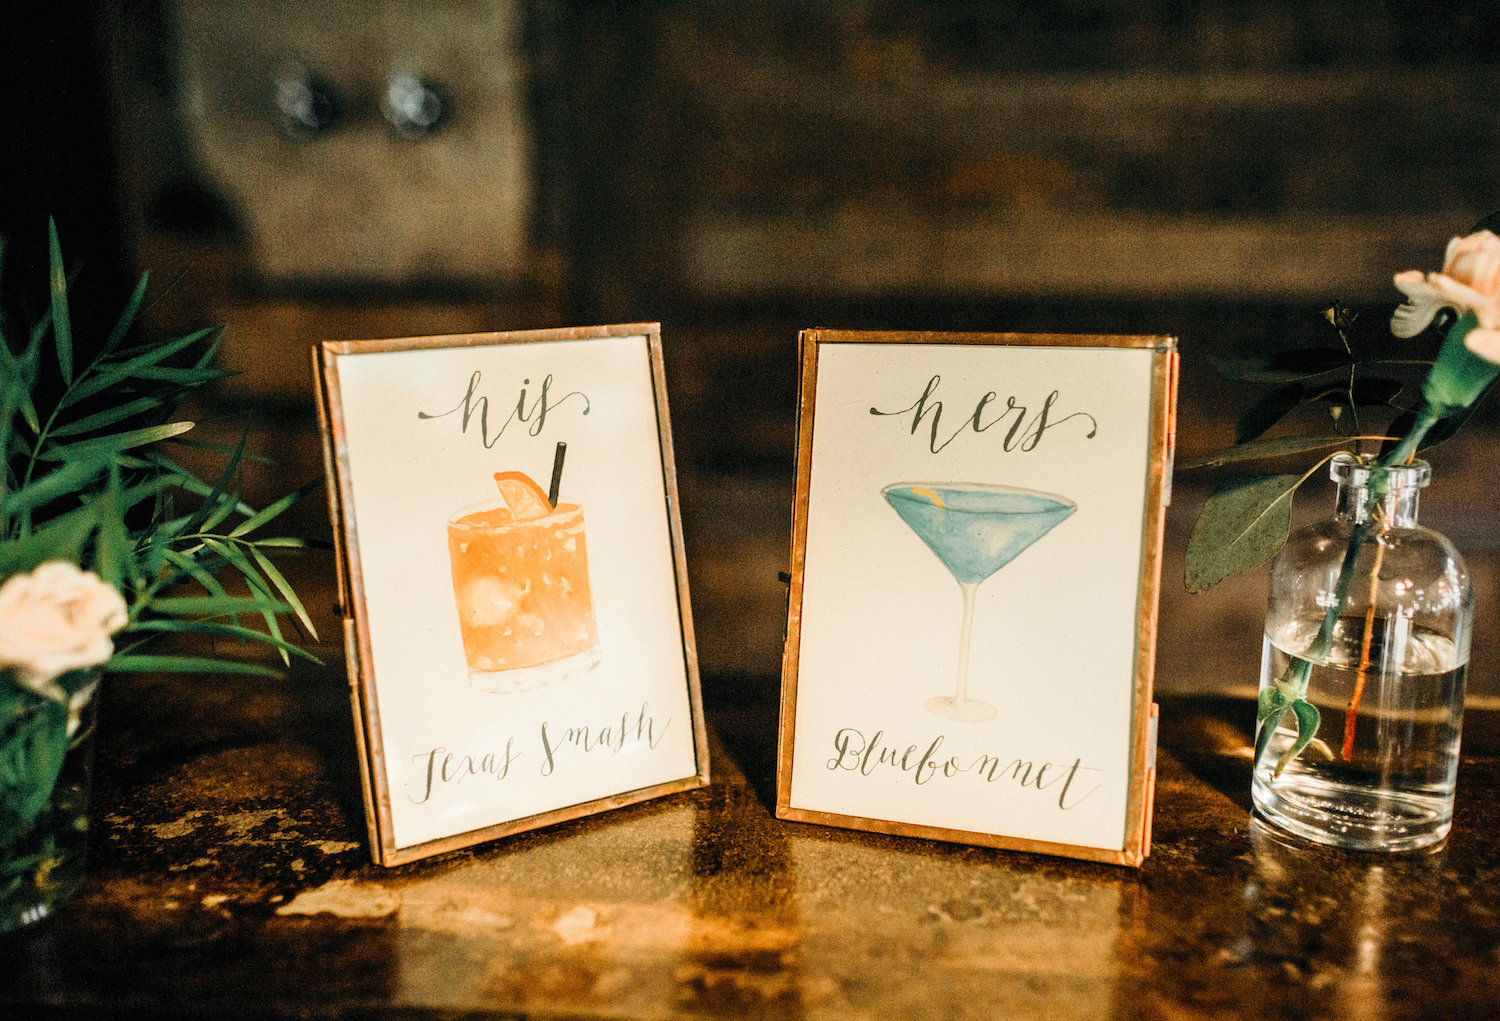 His and hers signs for special wedding cocktails